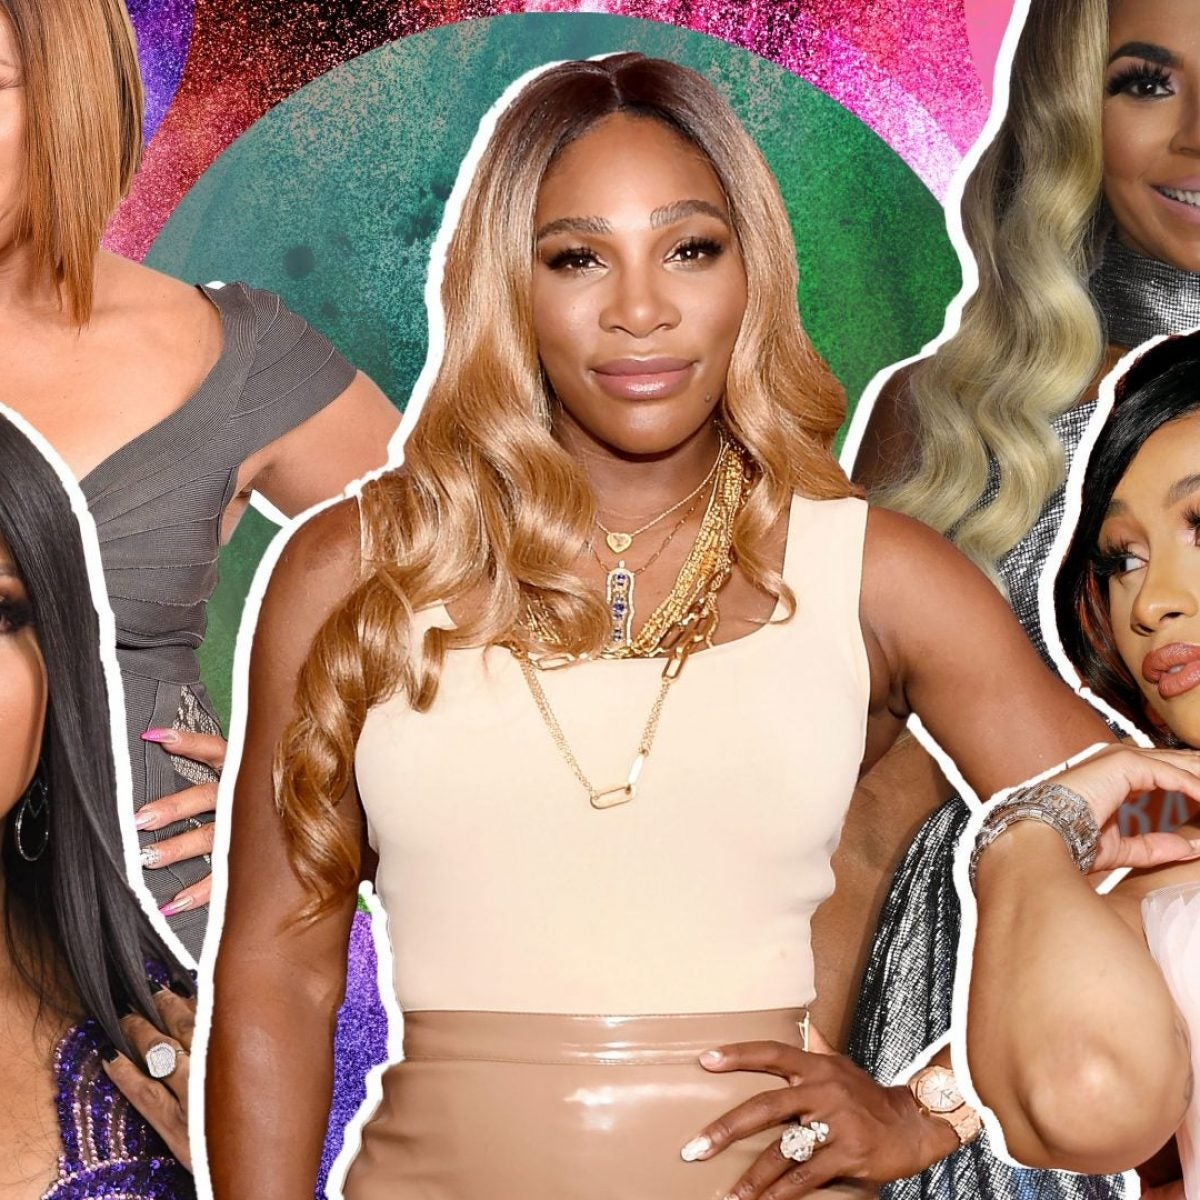 It's Time For Libras To Shine! 27 Celebrities Celebrating Their Birthdays Under The Sign